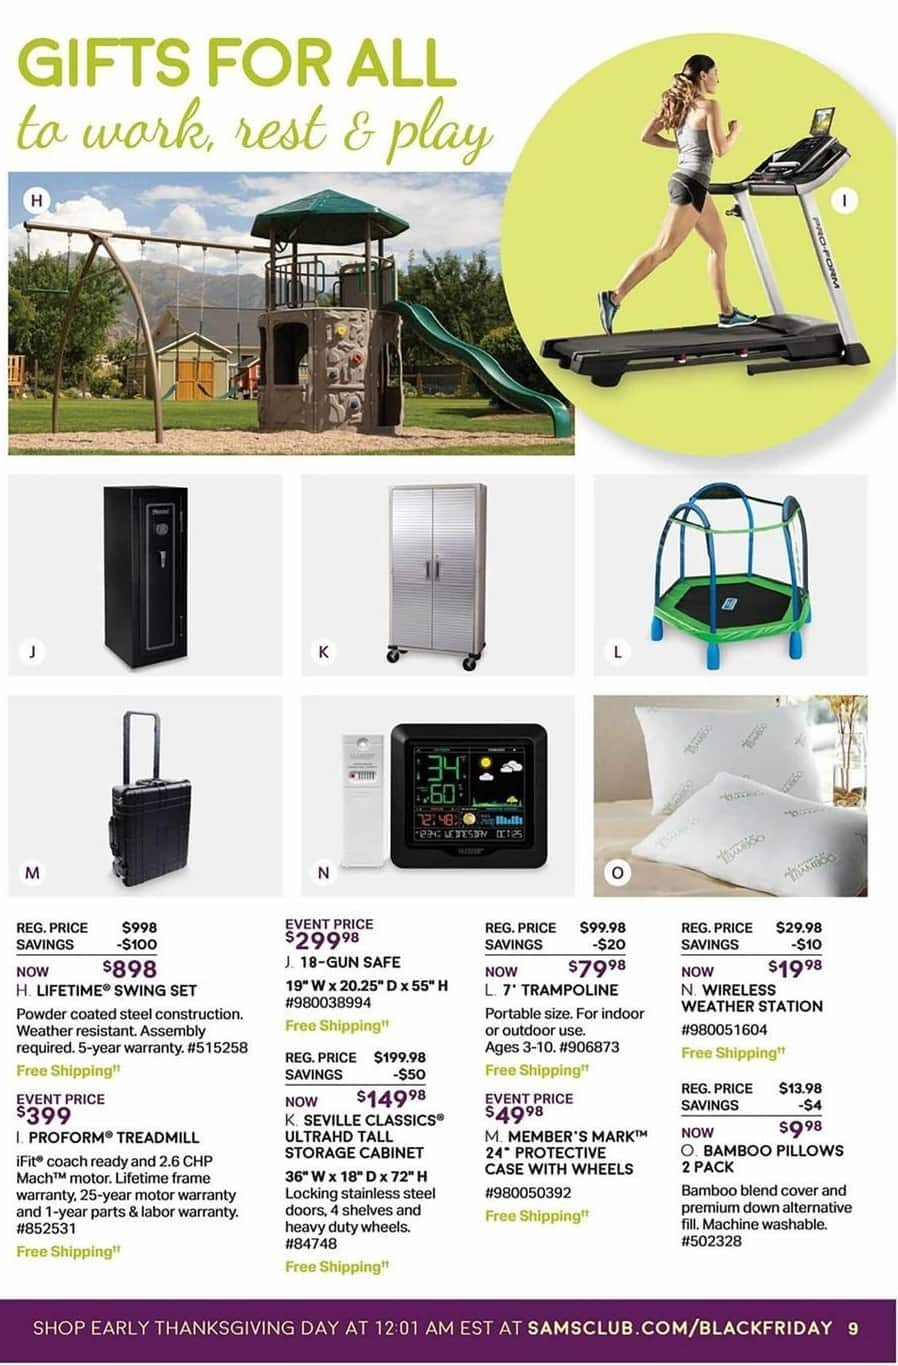 """Sam's Club Black Friday: Member's Mark 24"""" Protective Case with Wheels for $49.98"""